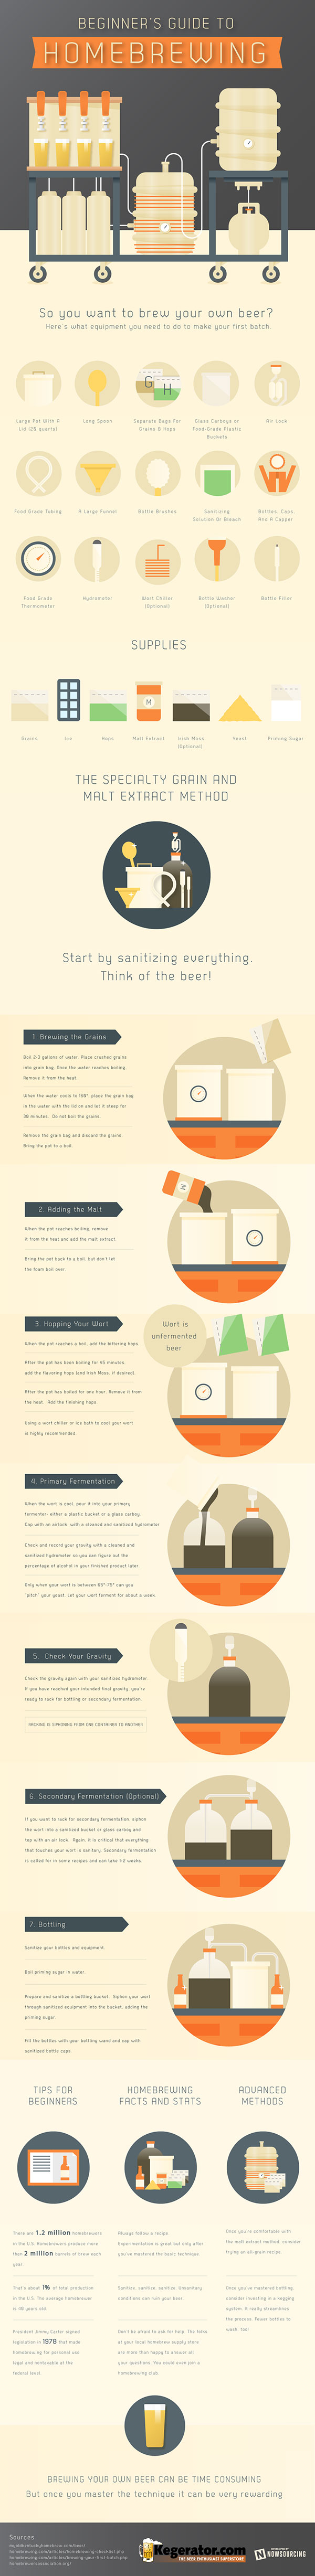 Beginner's Guide to Homebrewing Infographic